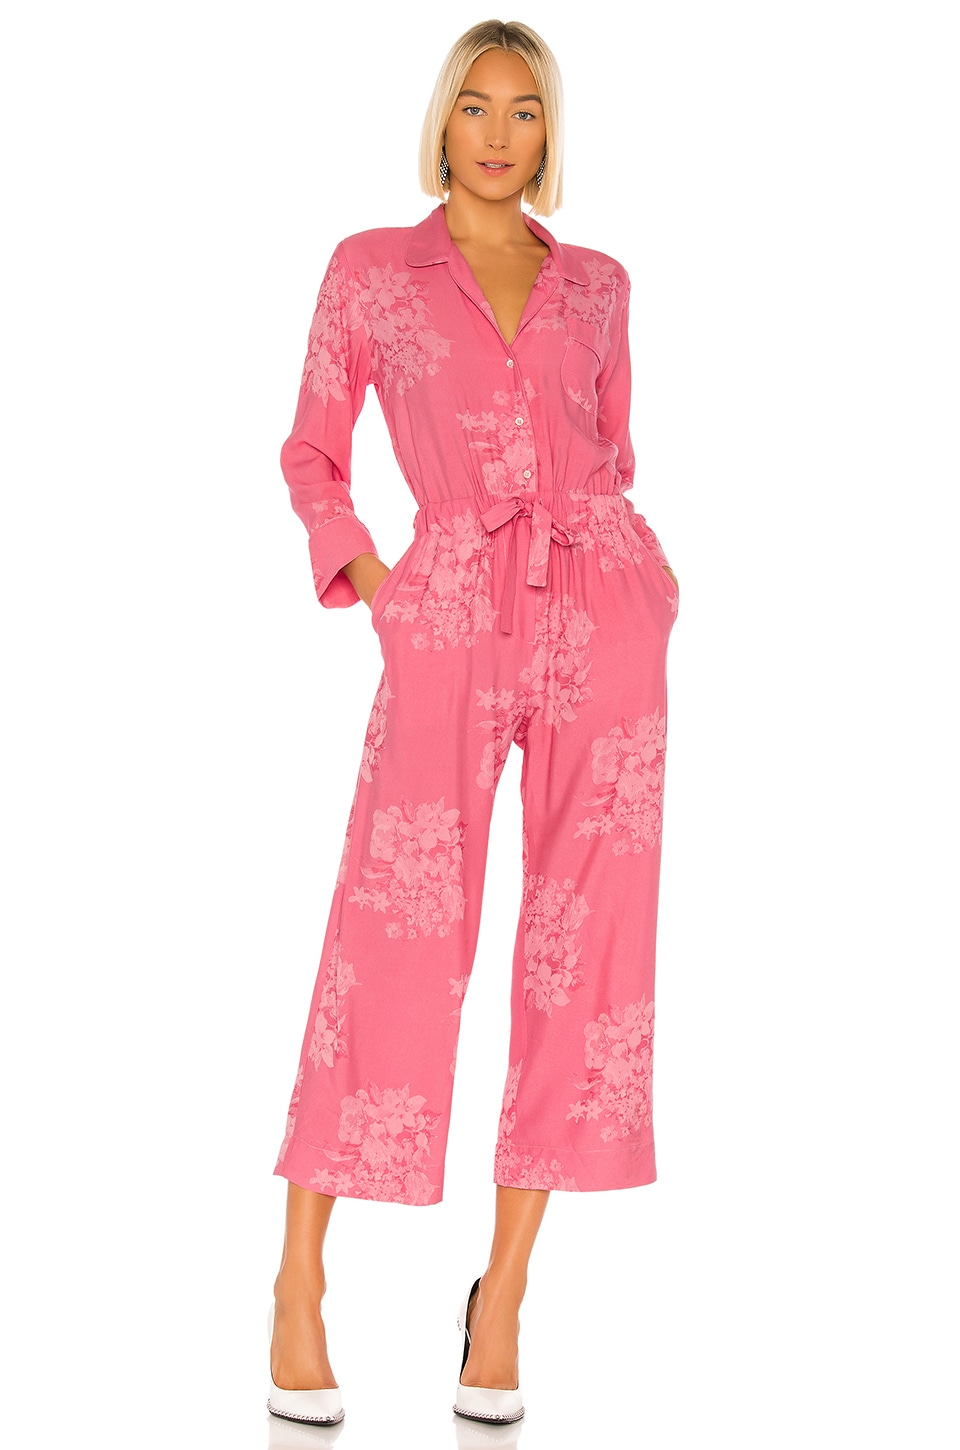 ICONS Objects of Devotion Draper Jumpsuit in Shadow Rose